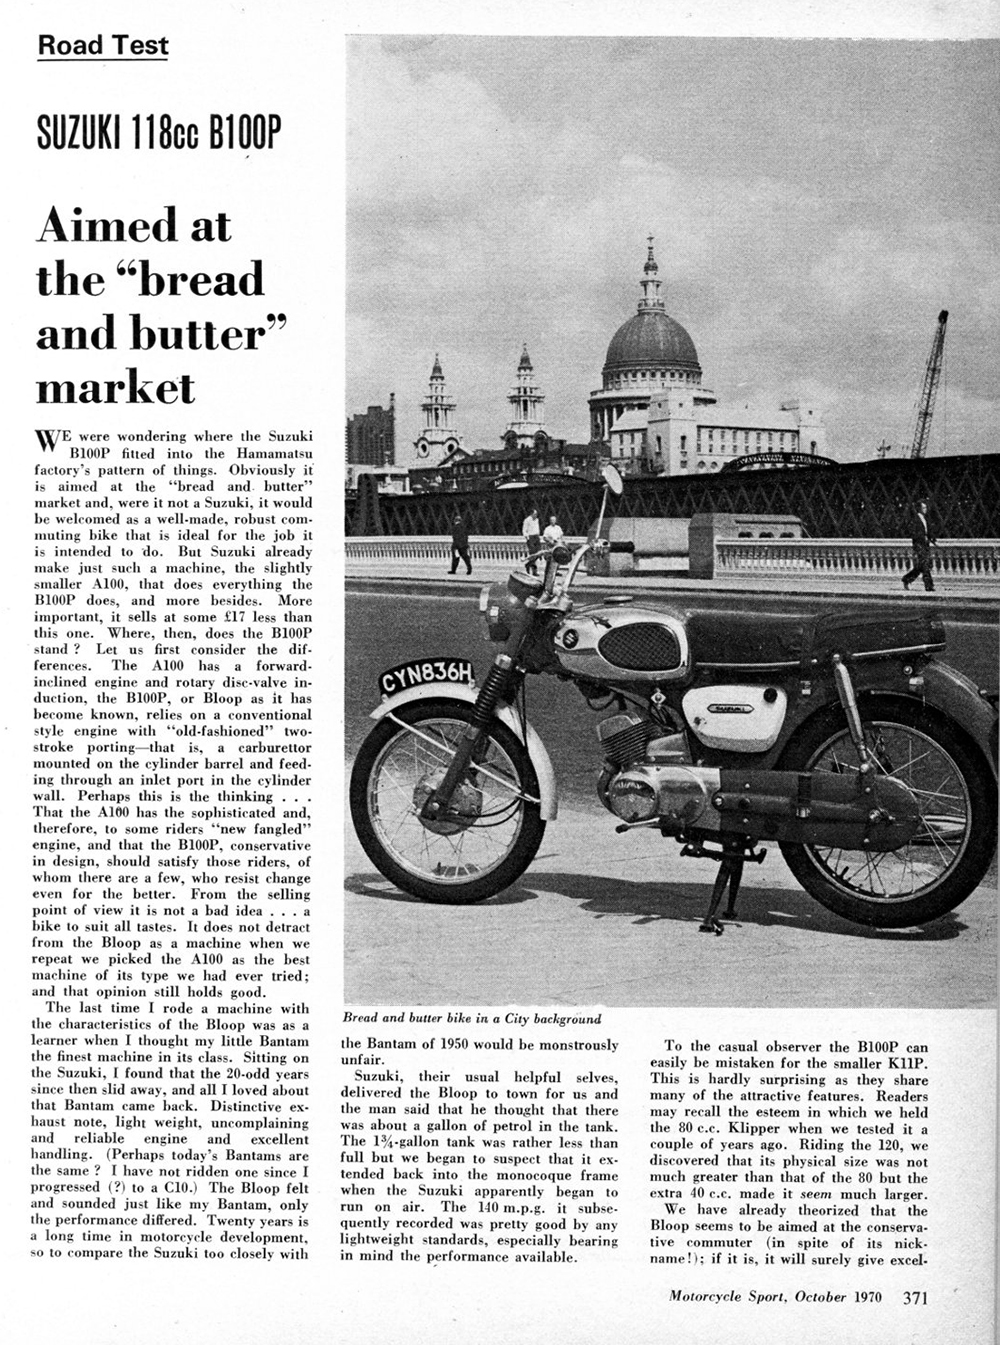 1970 Suzuki B100P road test 1.jpg